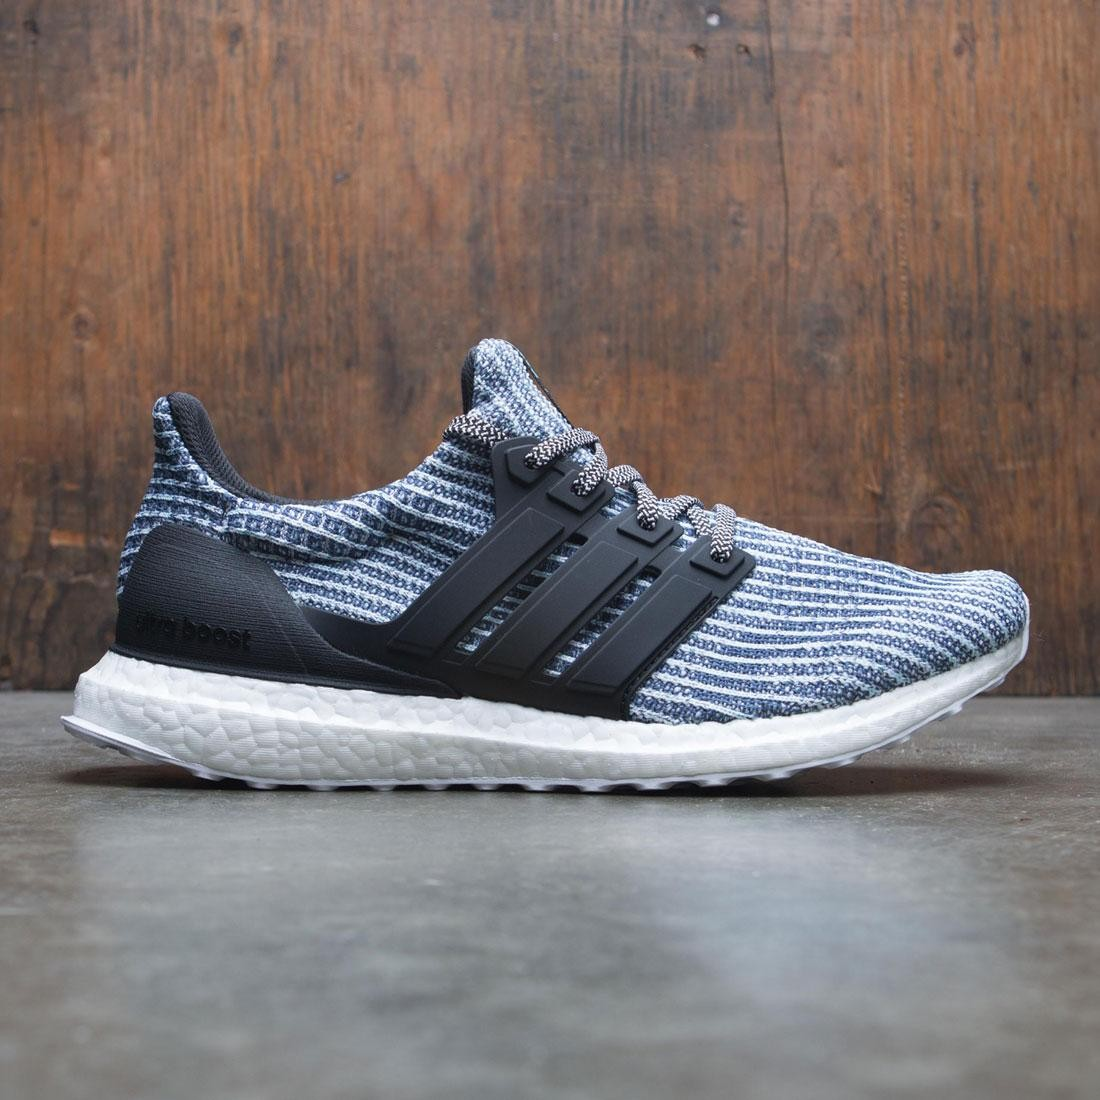 new product 25eab ae1bd Adidas Men UltraBOOST Parley (white / carbon / blue spirit)